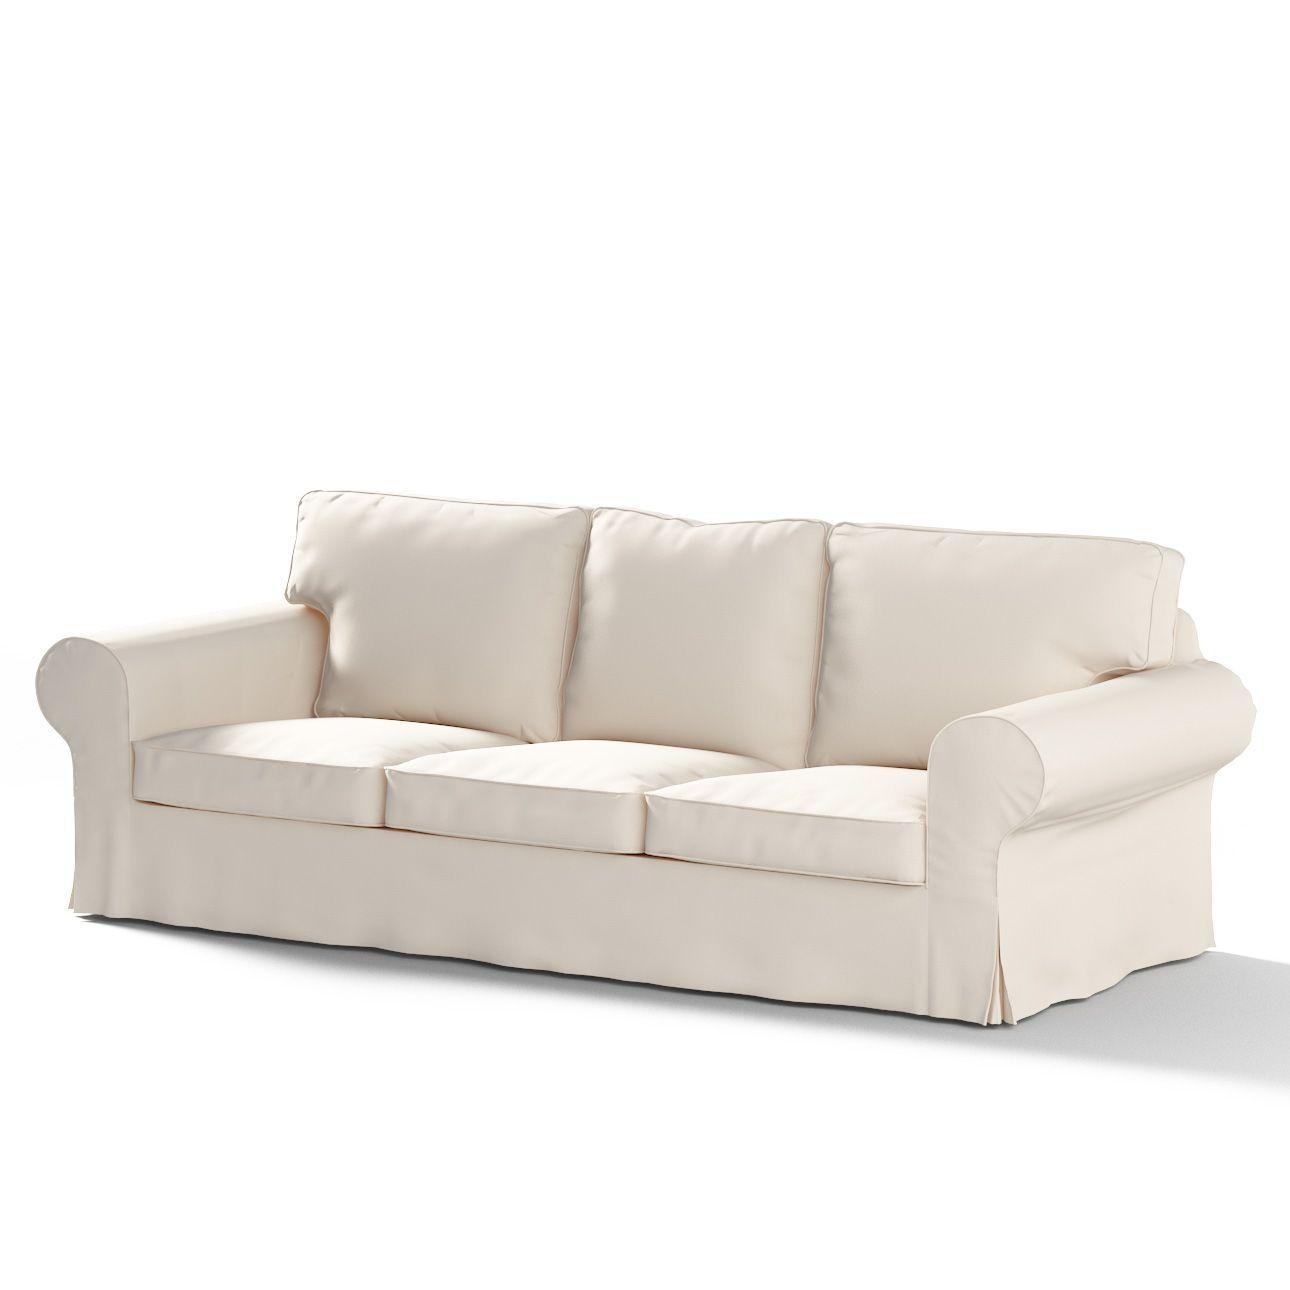 Furniture: Classy Ikea Couch Covers Design For Stylish Living Room Inside Sofa With Washable Covers (Image 3 of 20)